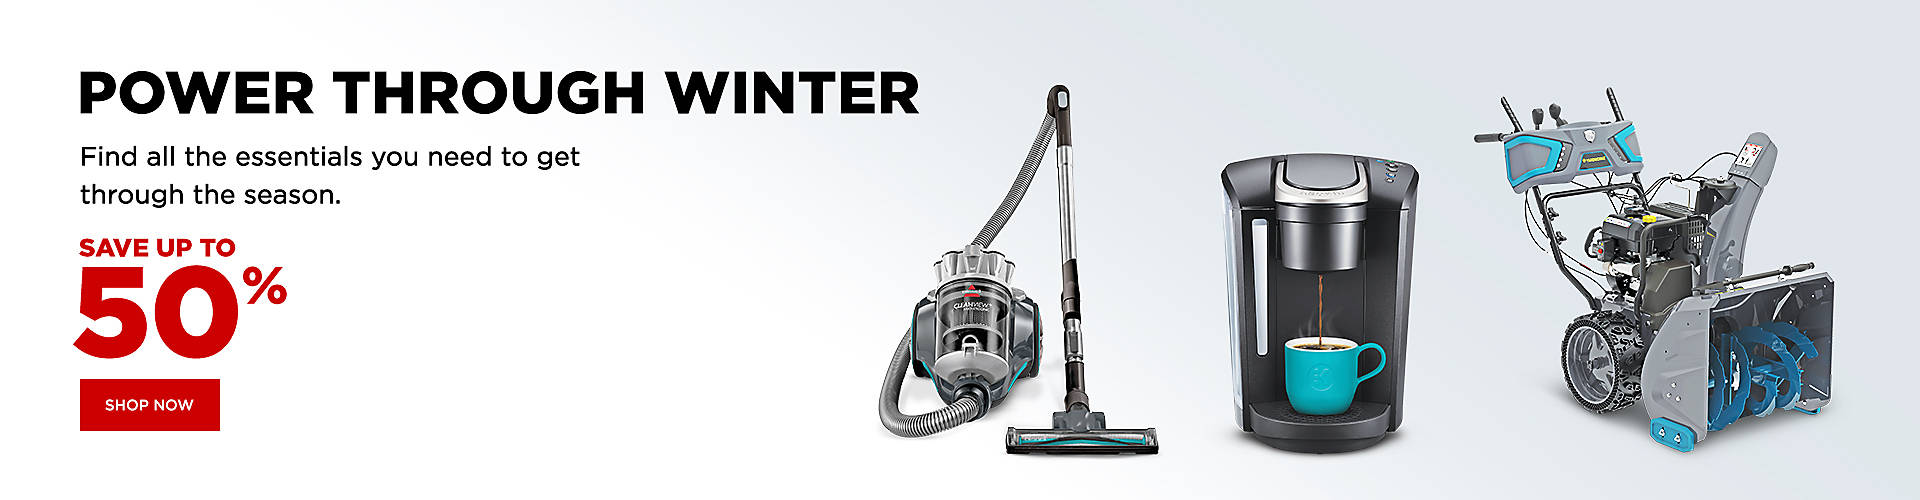 POWER THROUGH WINTER  Find all the essentials you need to get through the season.   Save up to 50%